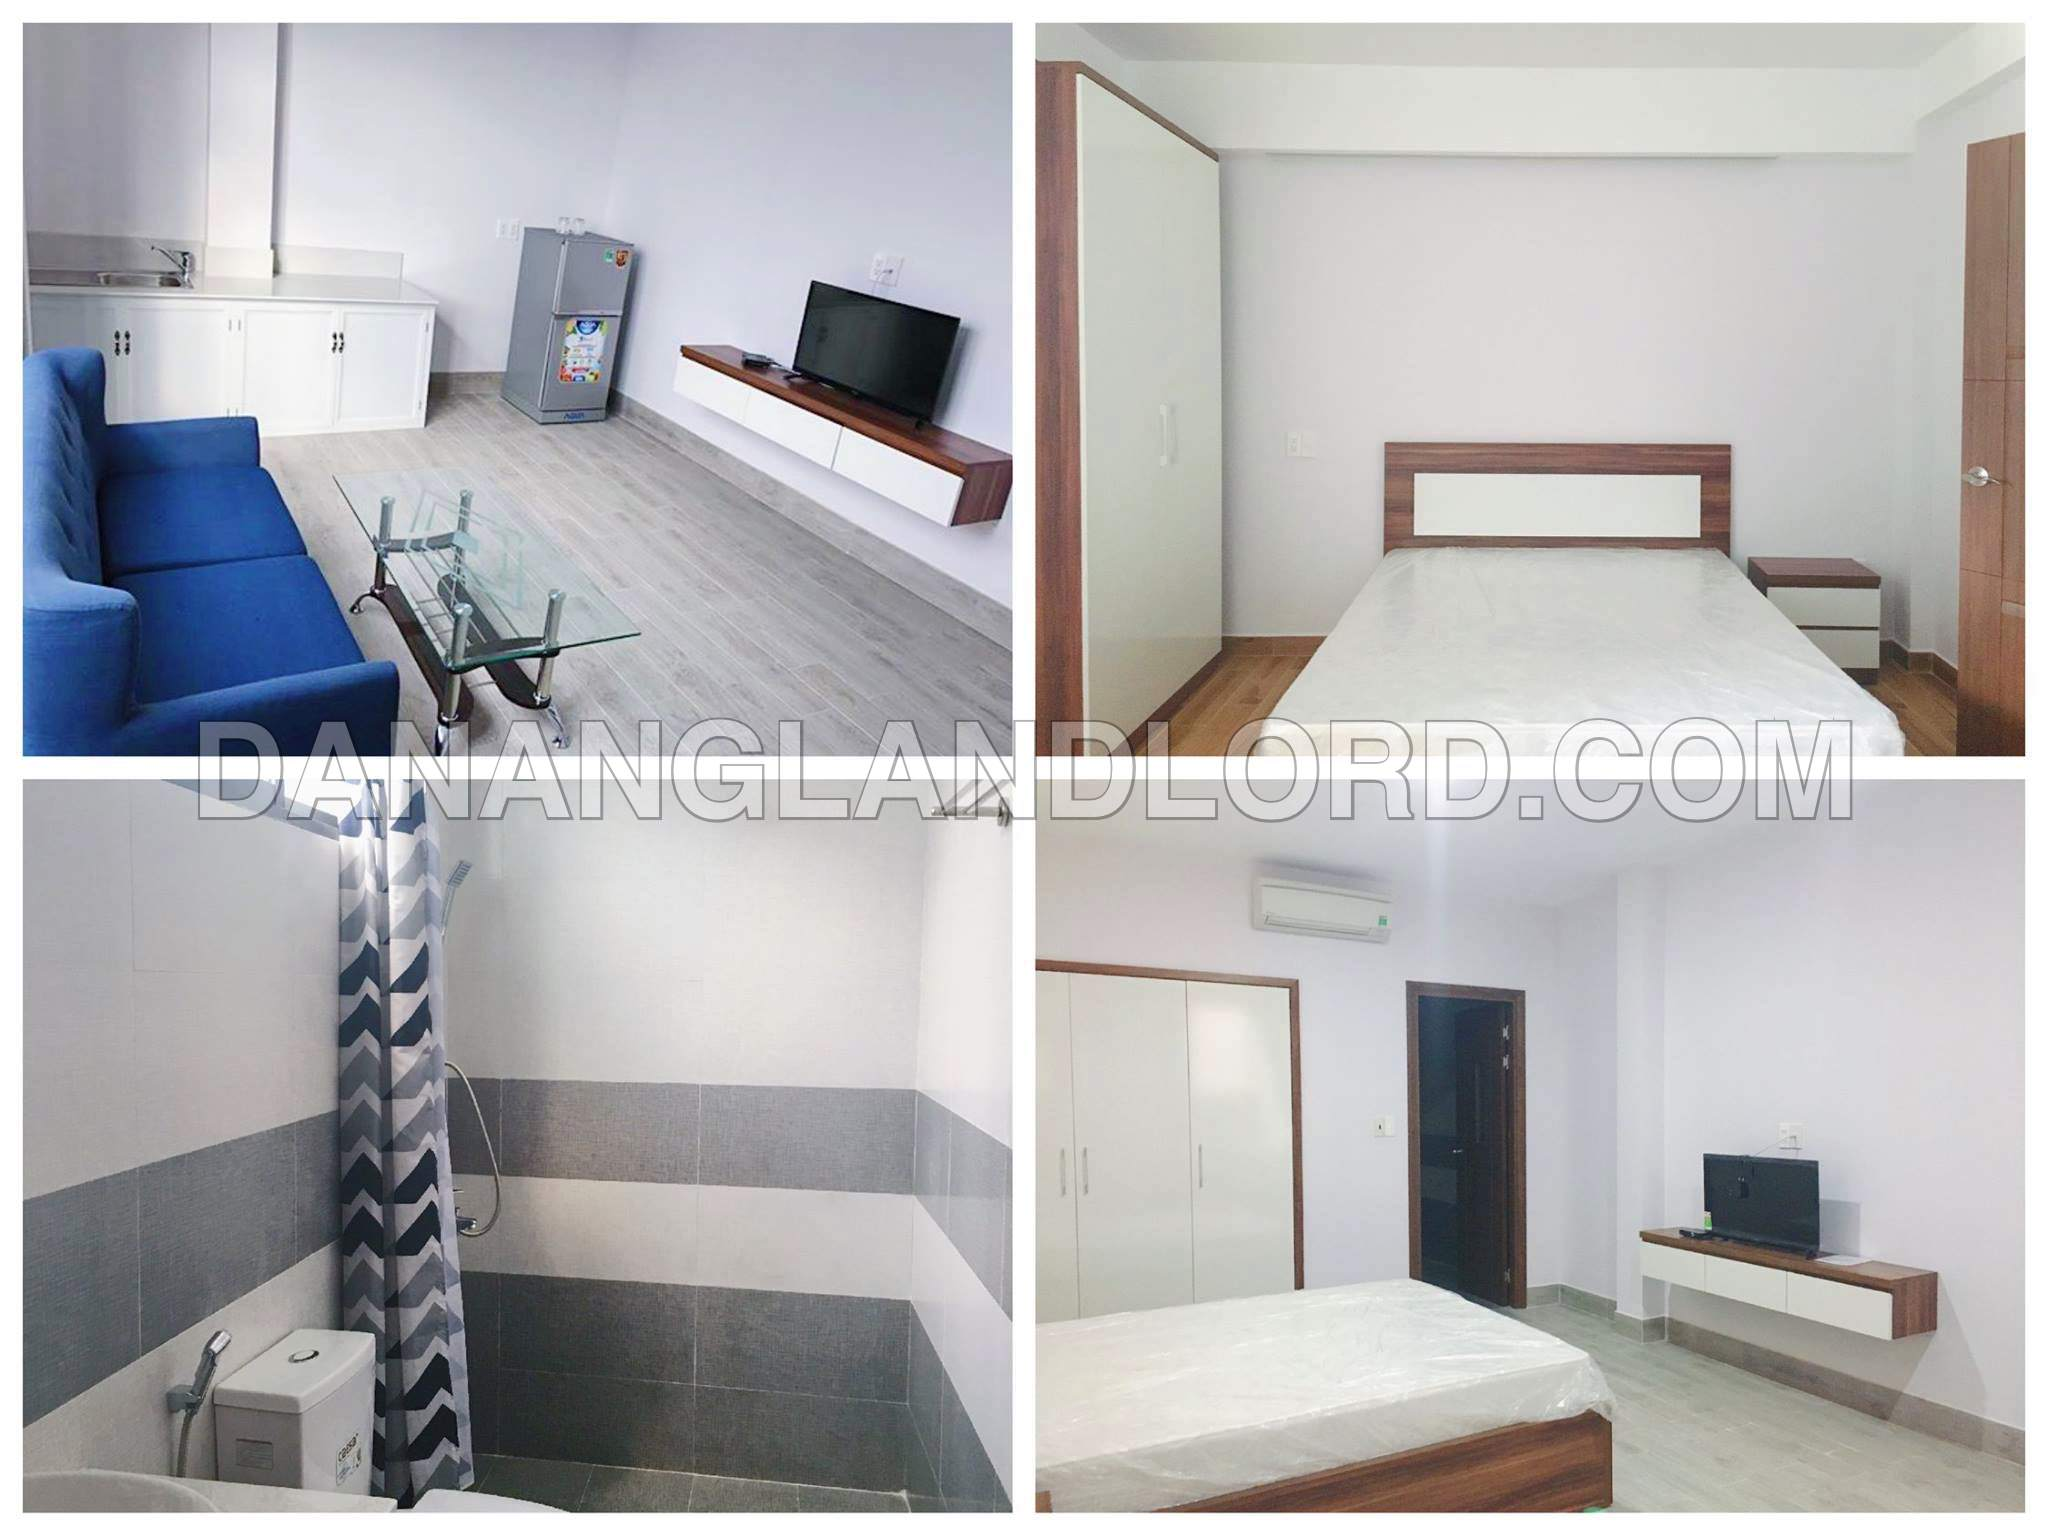 2 bedrooms apartment, An Thuong, 500m to My Khe beach – A471